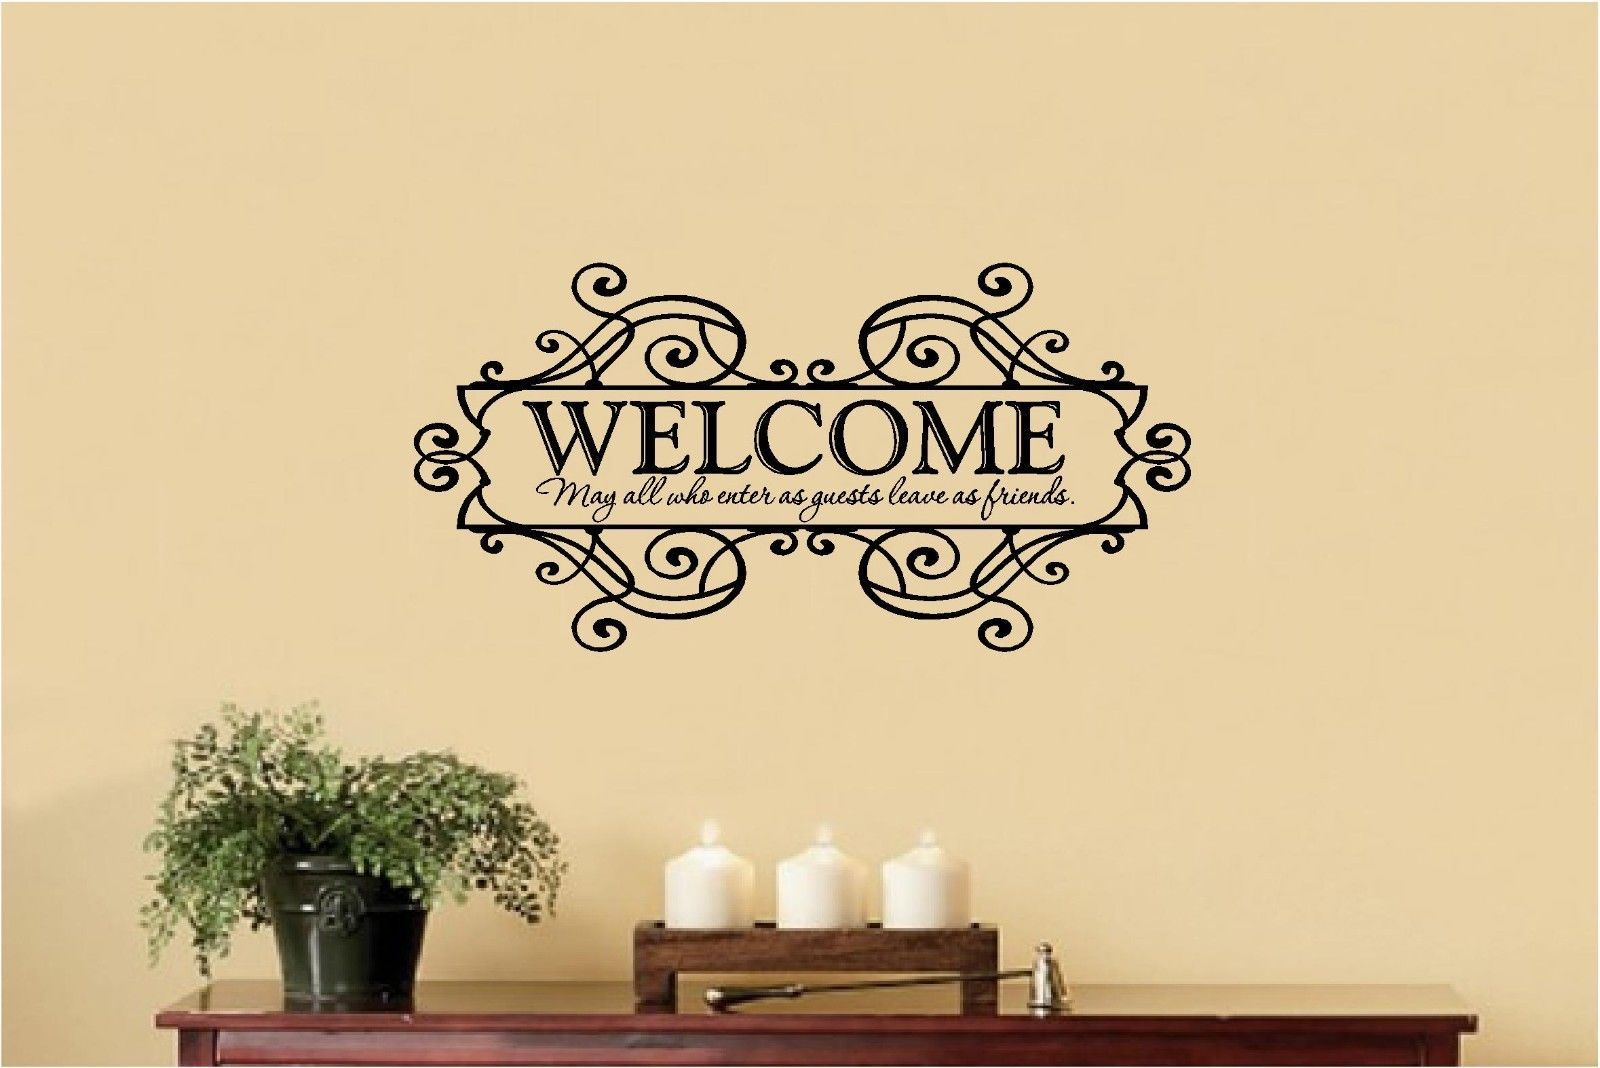 good quotes or sayings for guest rooms in a guest house - Google ...